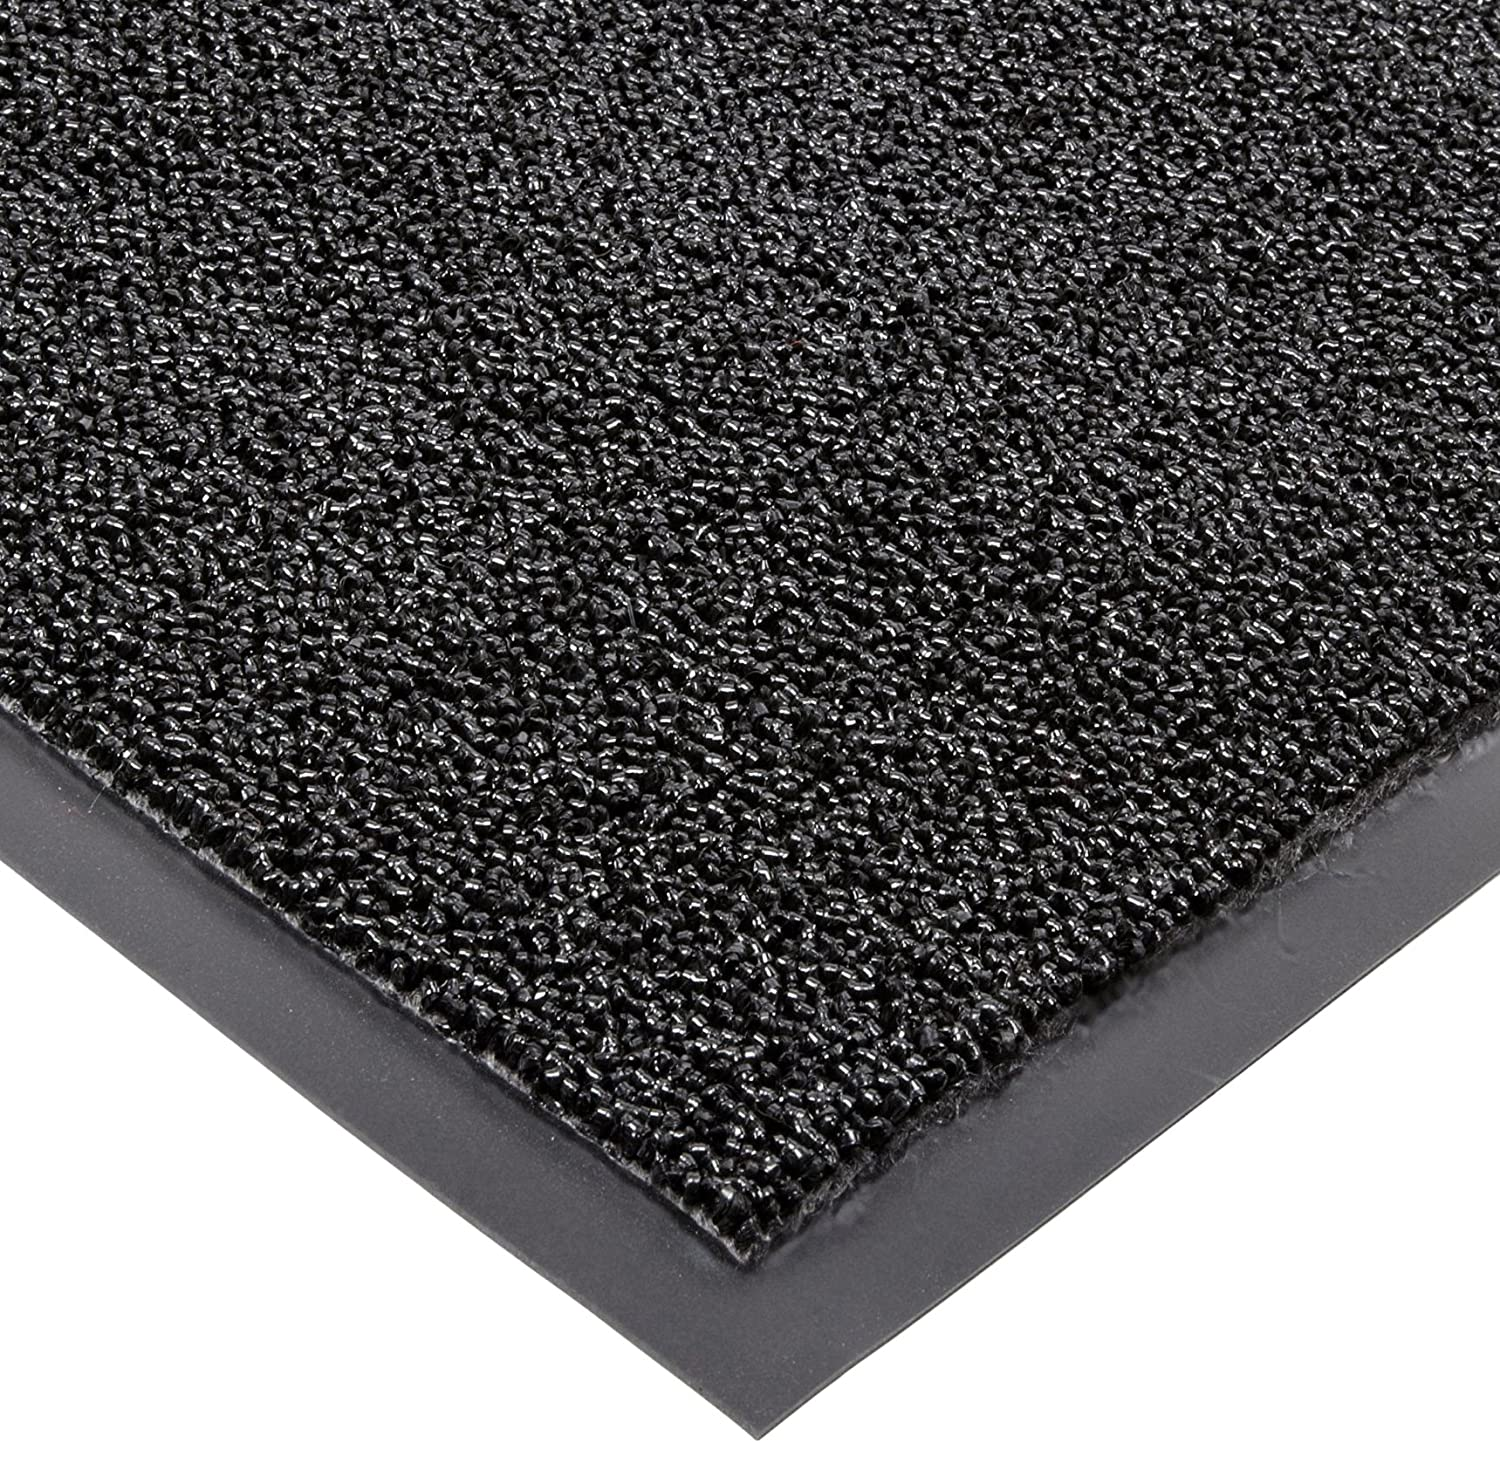 Notrax 146 Encore Entrance Mat, for Inside Foyer Area, 4' Width x 6' Length x 5/16 Thickness, Black Superior Manufacturing 146S0046BL